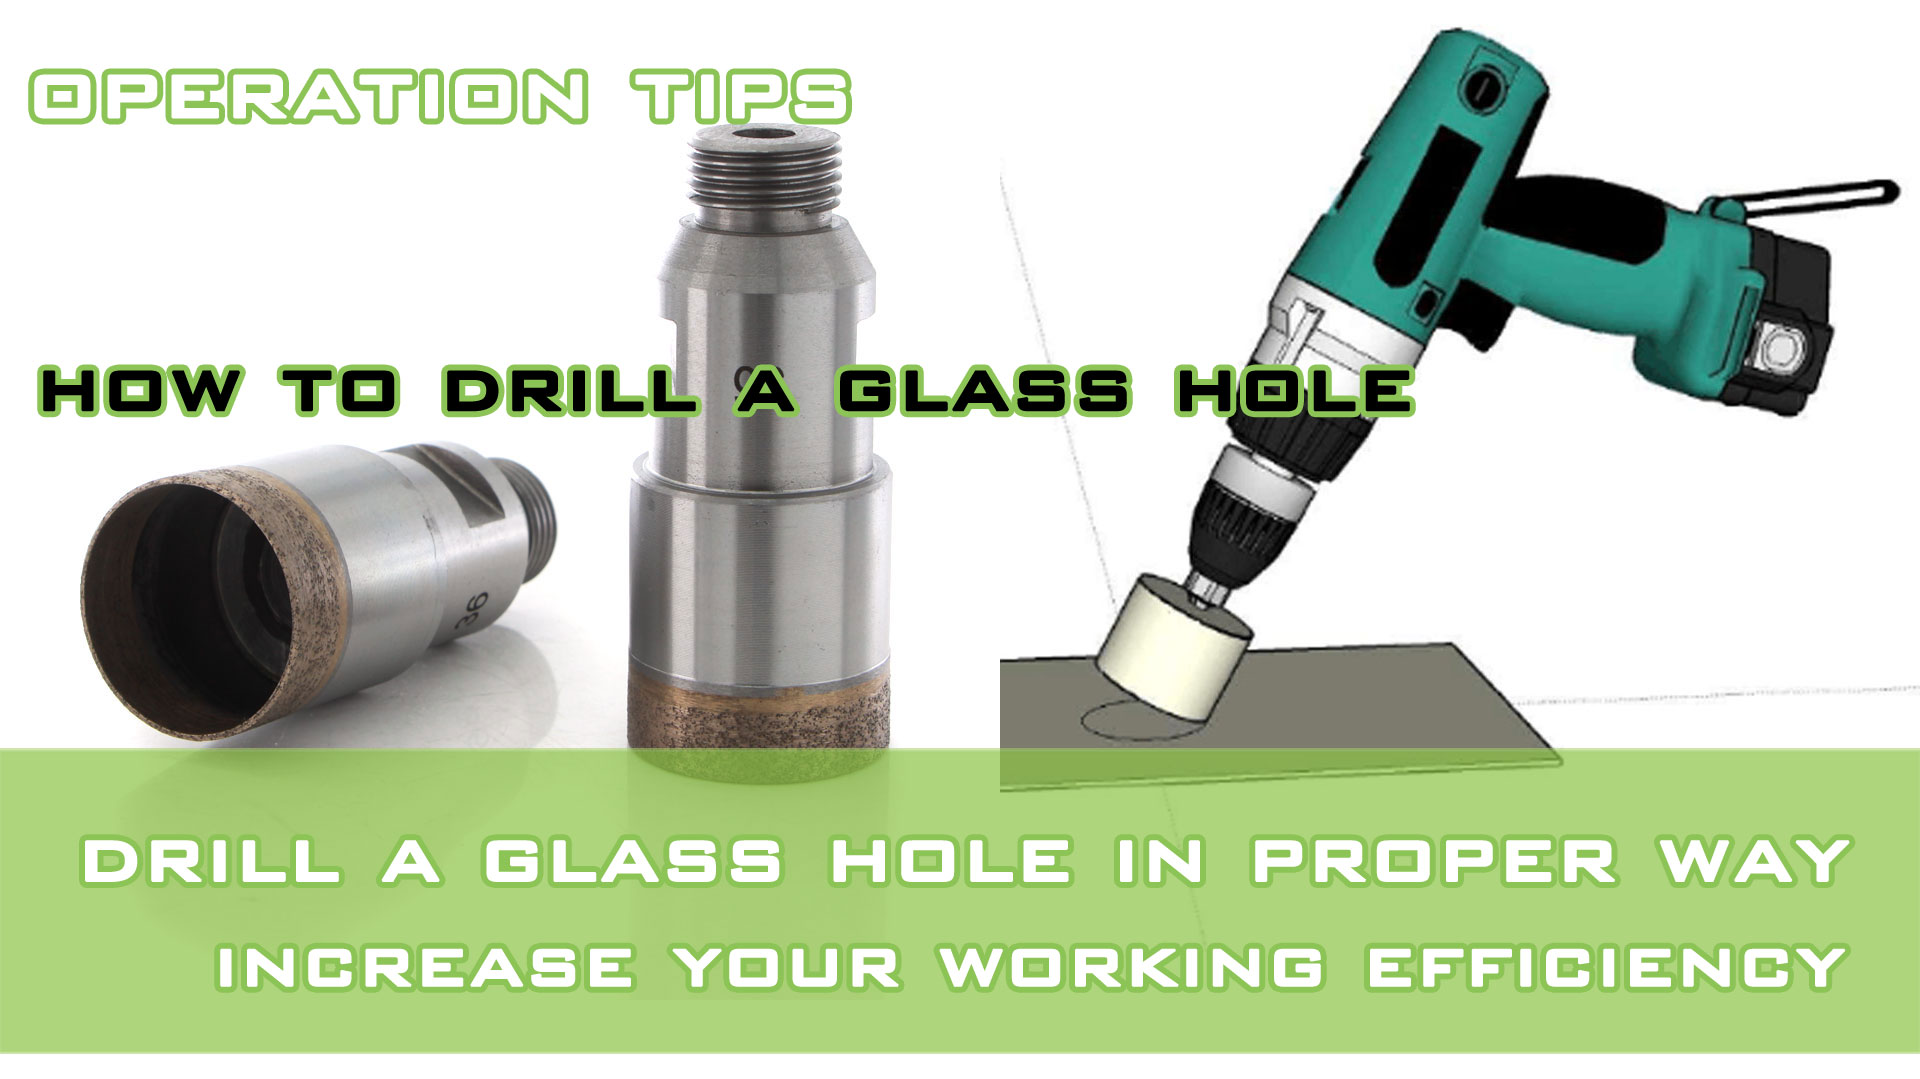 How to drill a glass hole in proper way